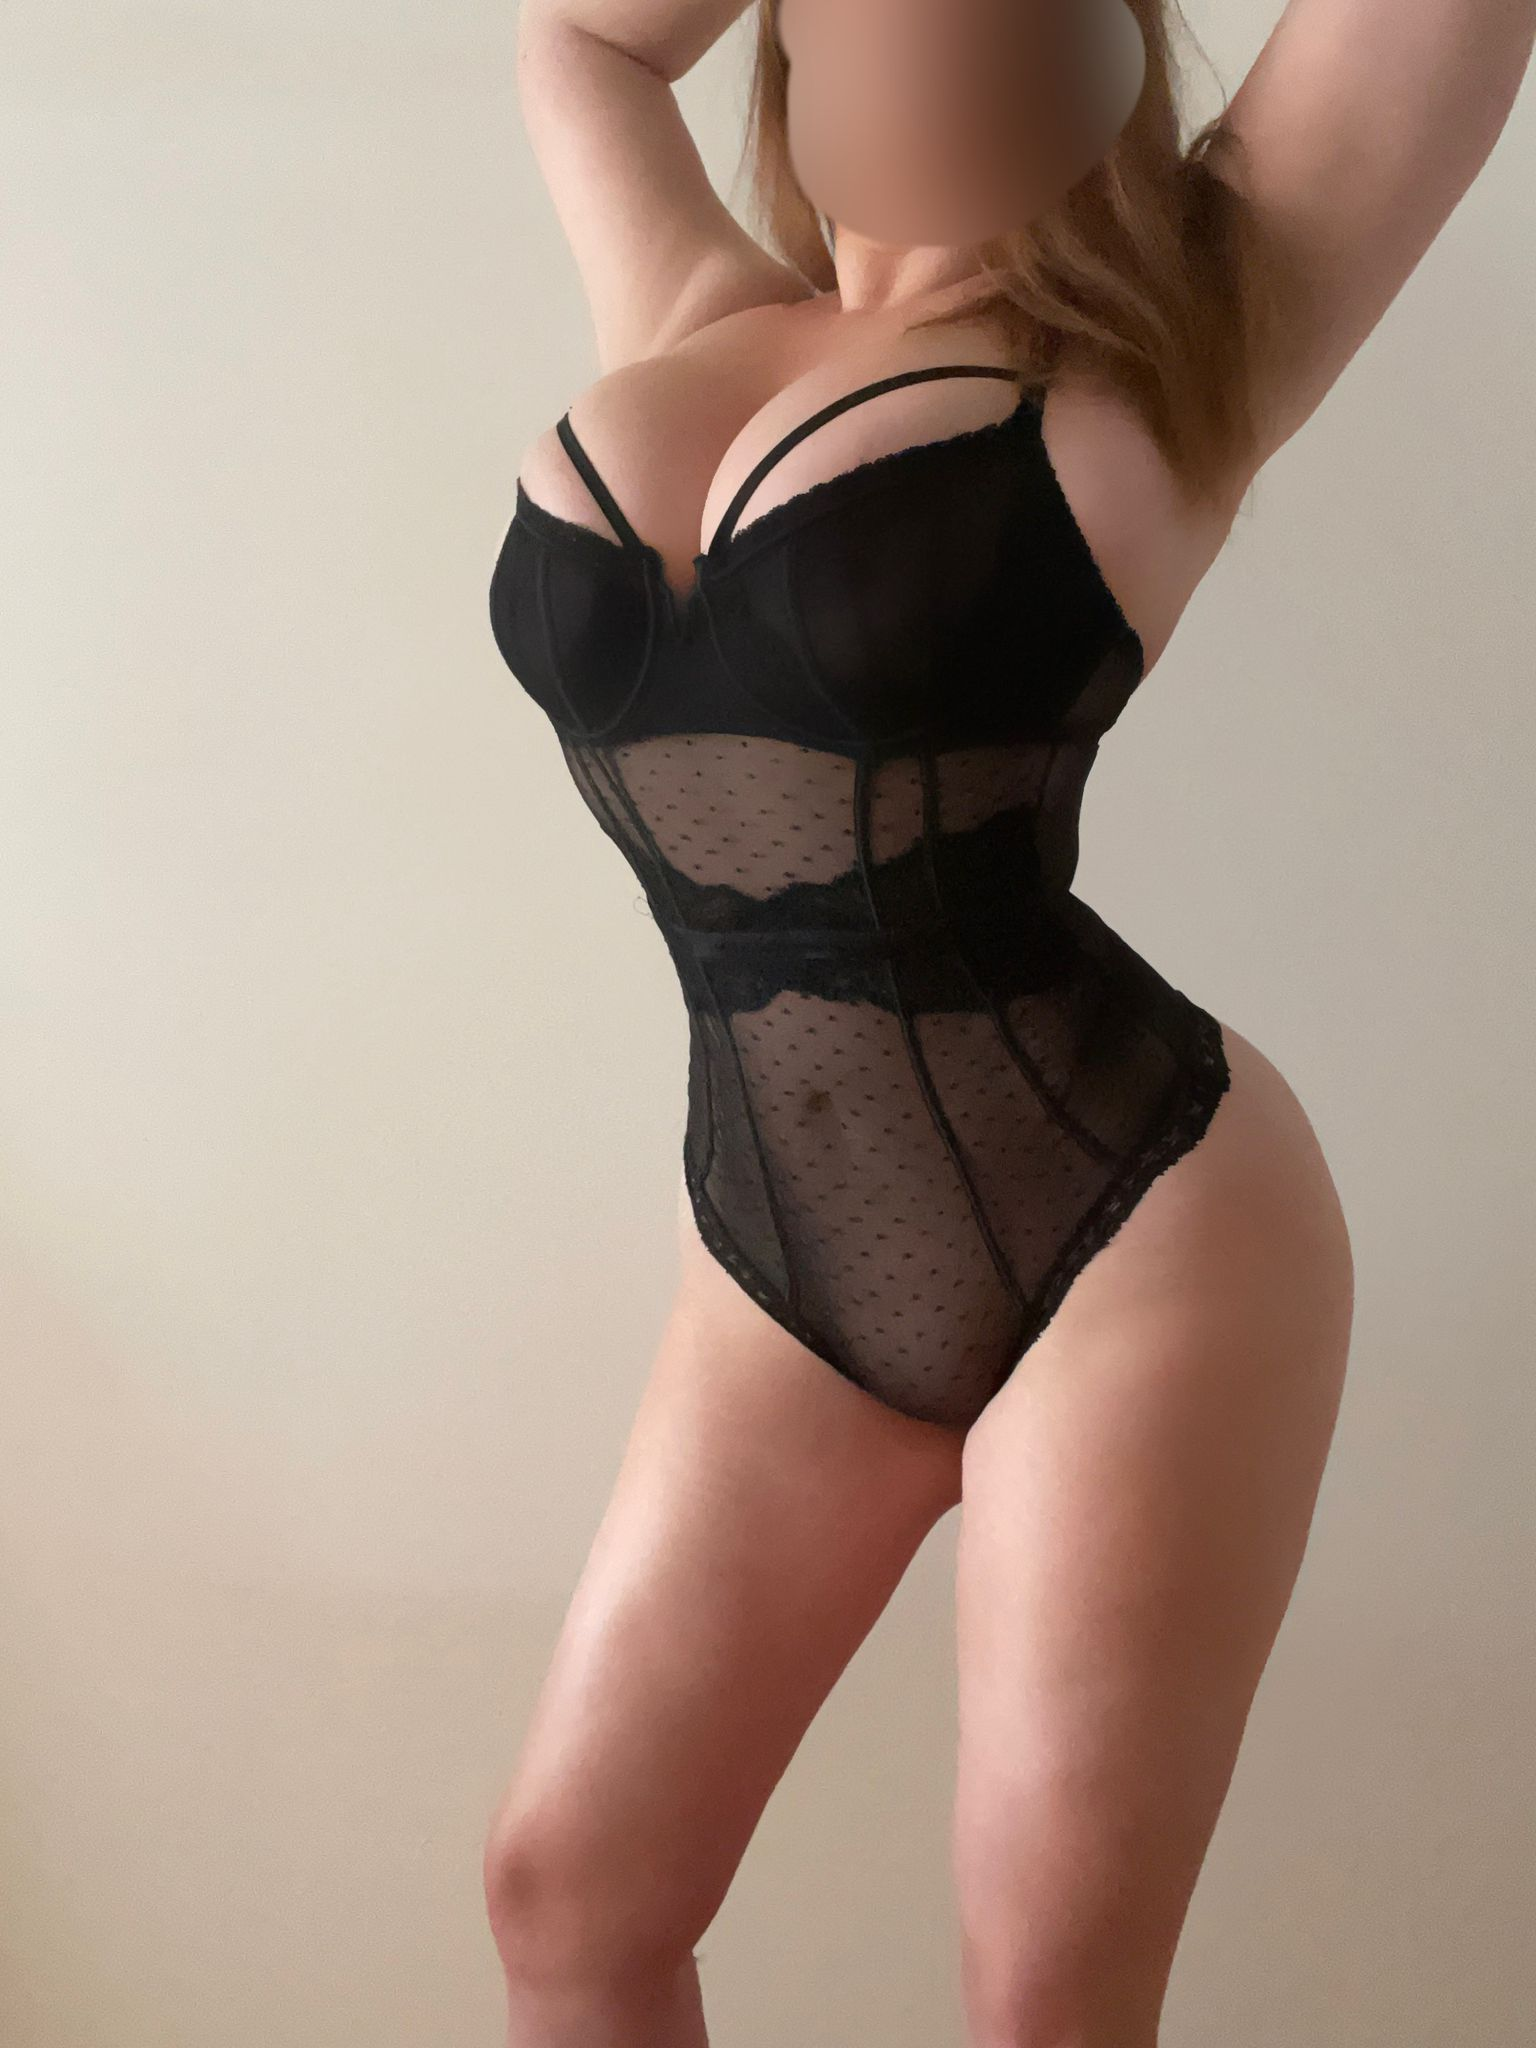 Image of Newcastle Escort AMY